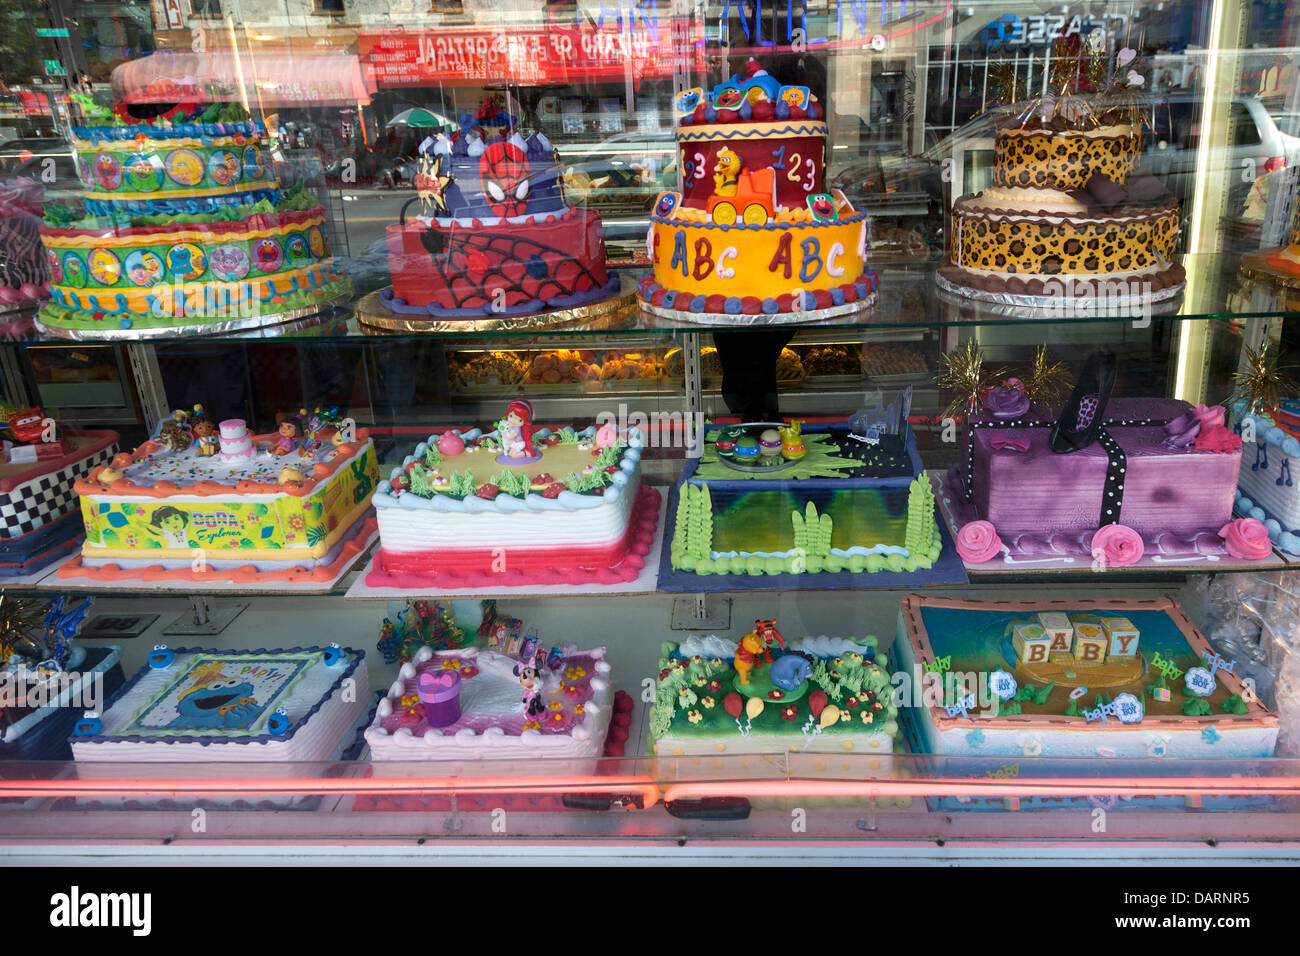 If You Have The Time To Shop Around Do So For Better PricesThis Cake Found In Tempe Arizona Will Change Way See Cakes From Now On